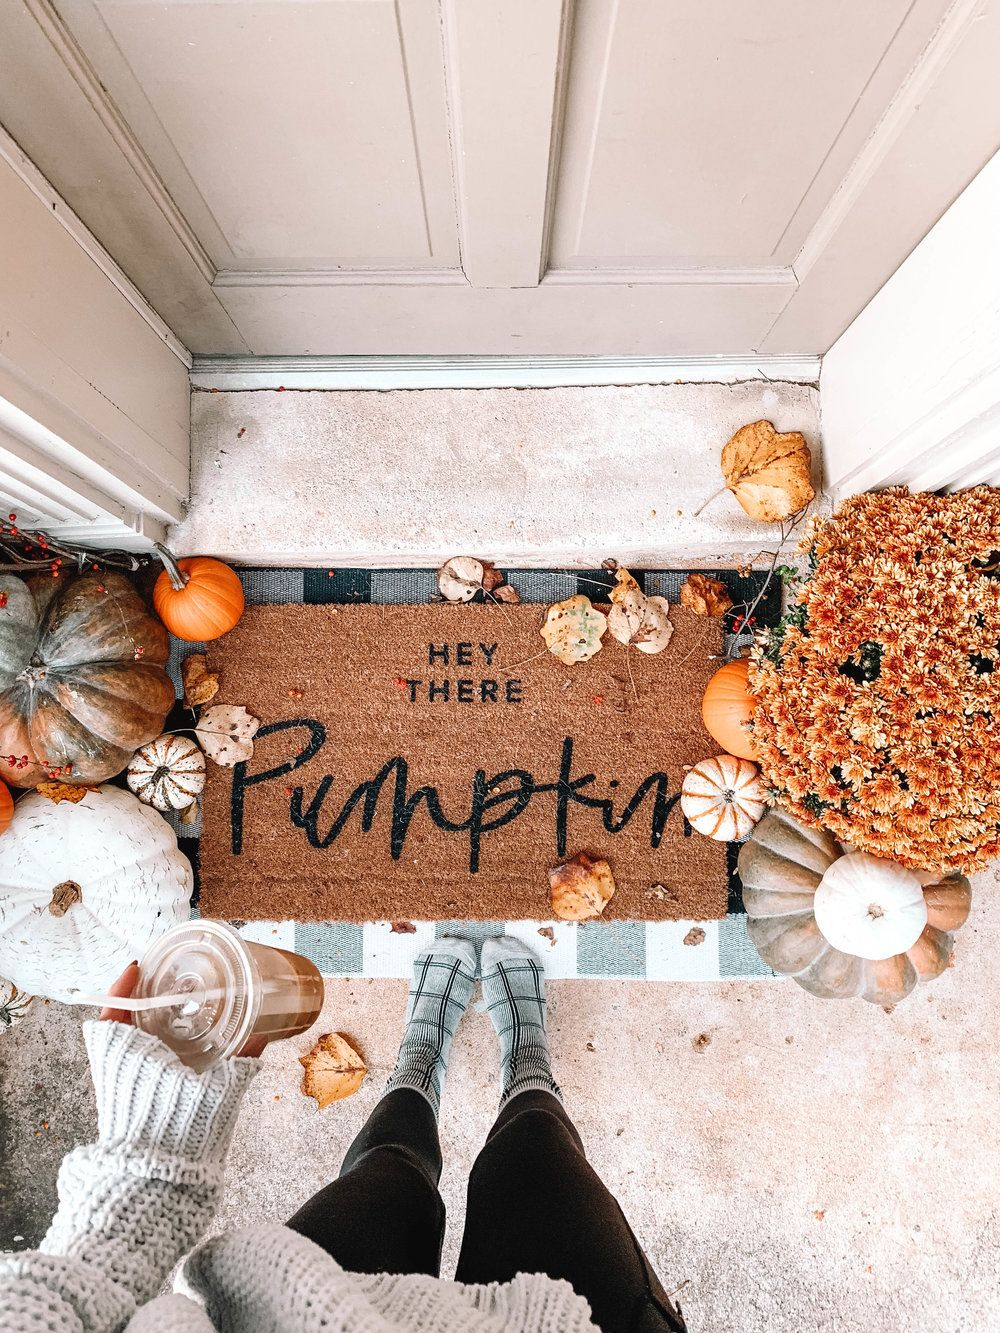 Blog - Carlyle Thornton #falldecorideasforthehome